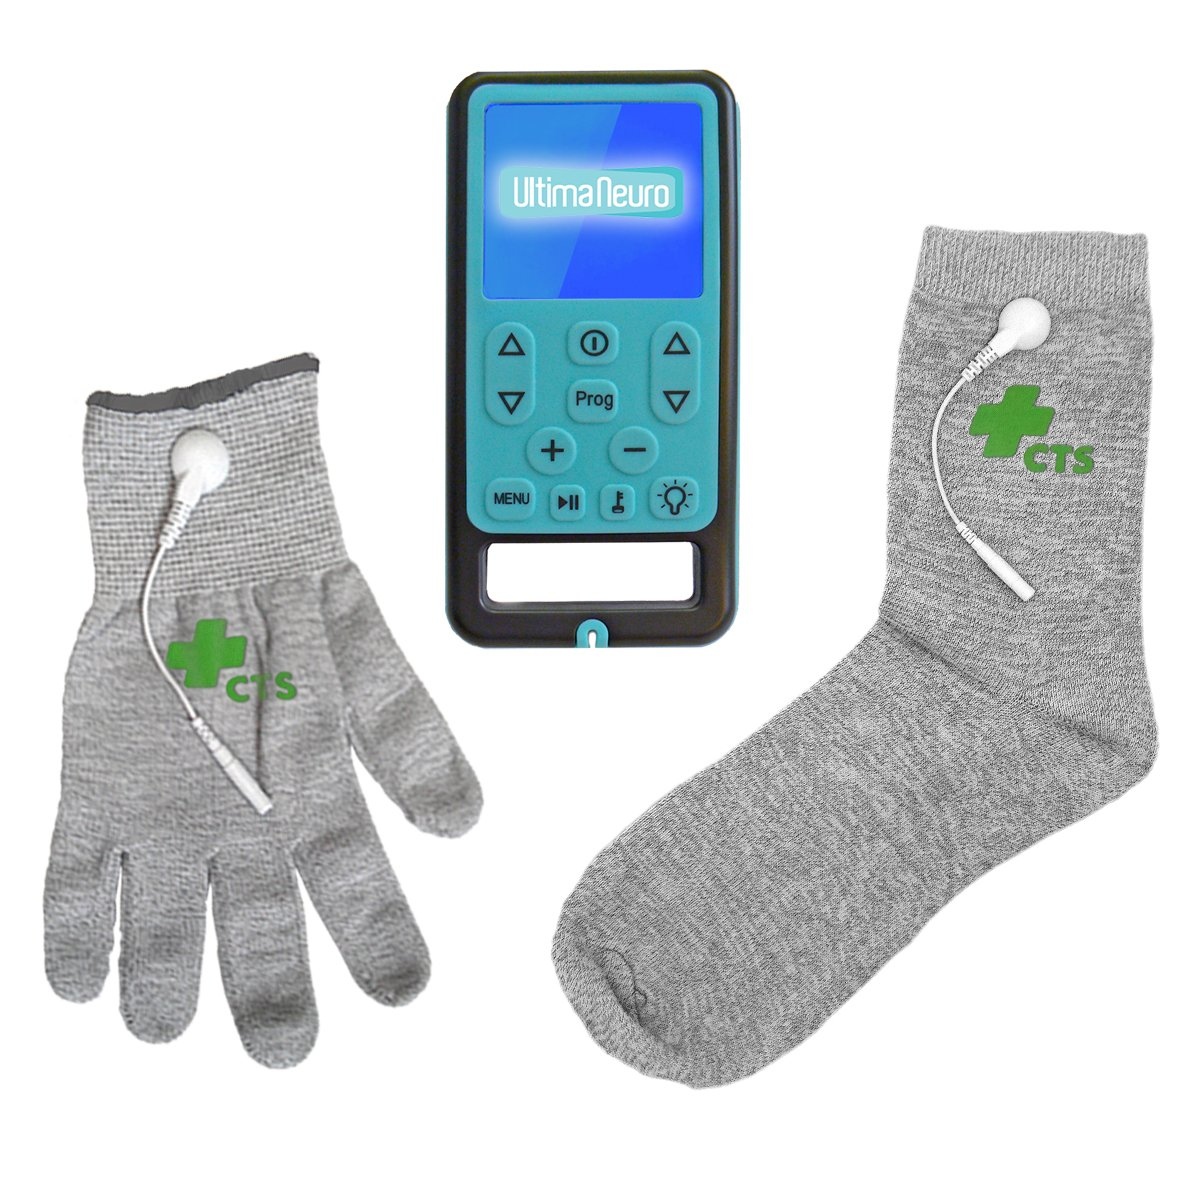 Ultima Neuro Neuropathy Treatment System for Relief of Peripheral, Diabetic & Poly Neuropathy Nerve Pain with Conductive Glove & Sock (Glove size Medium) by Ultima Neuro & Conductive Therapy Shop